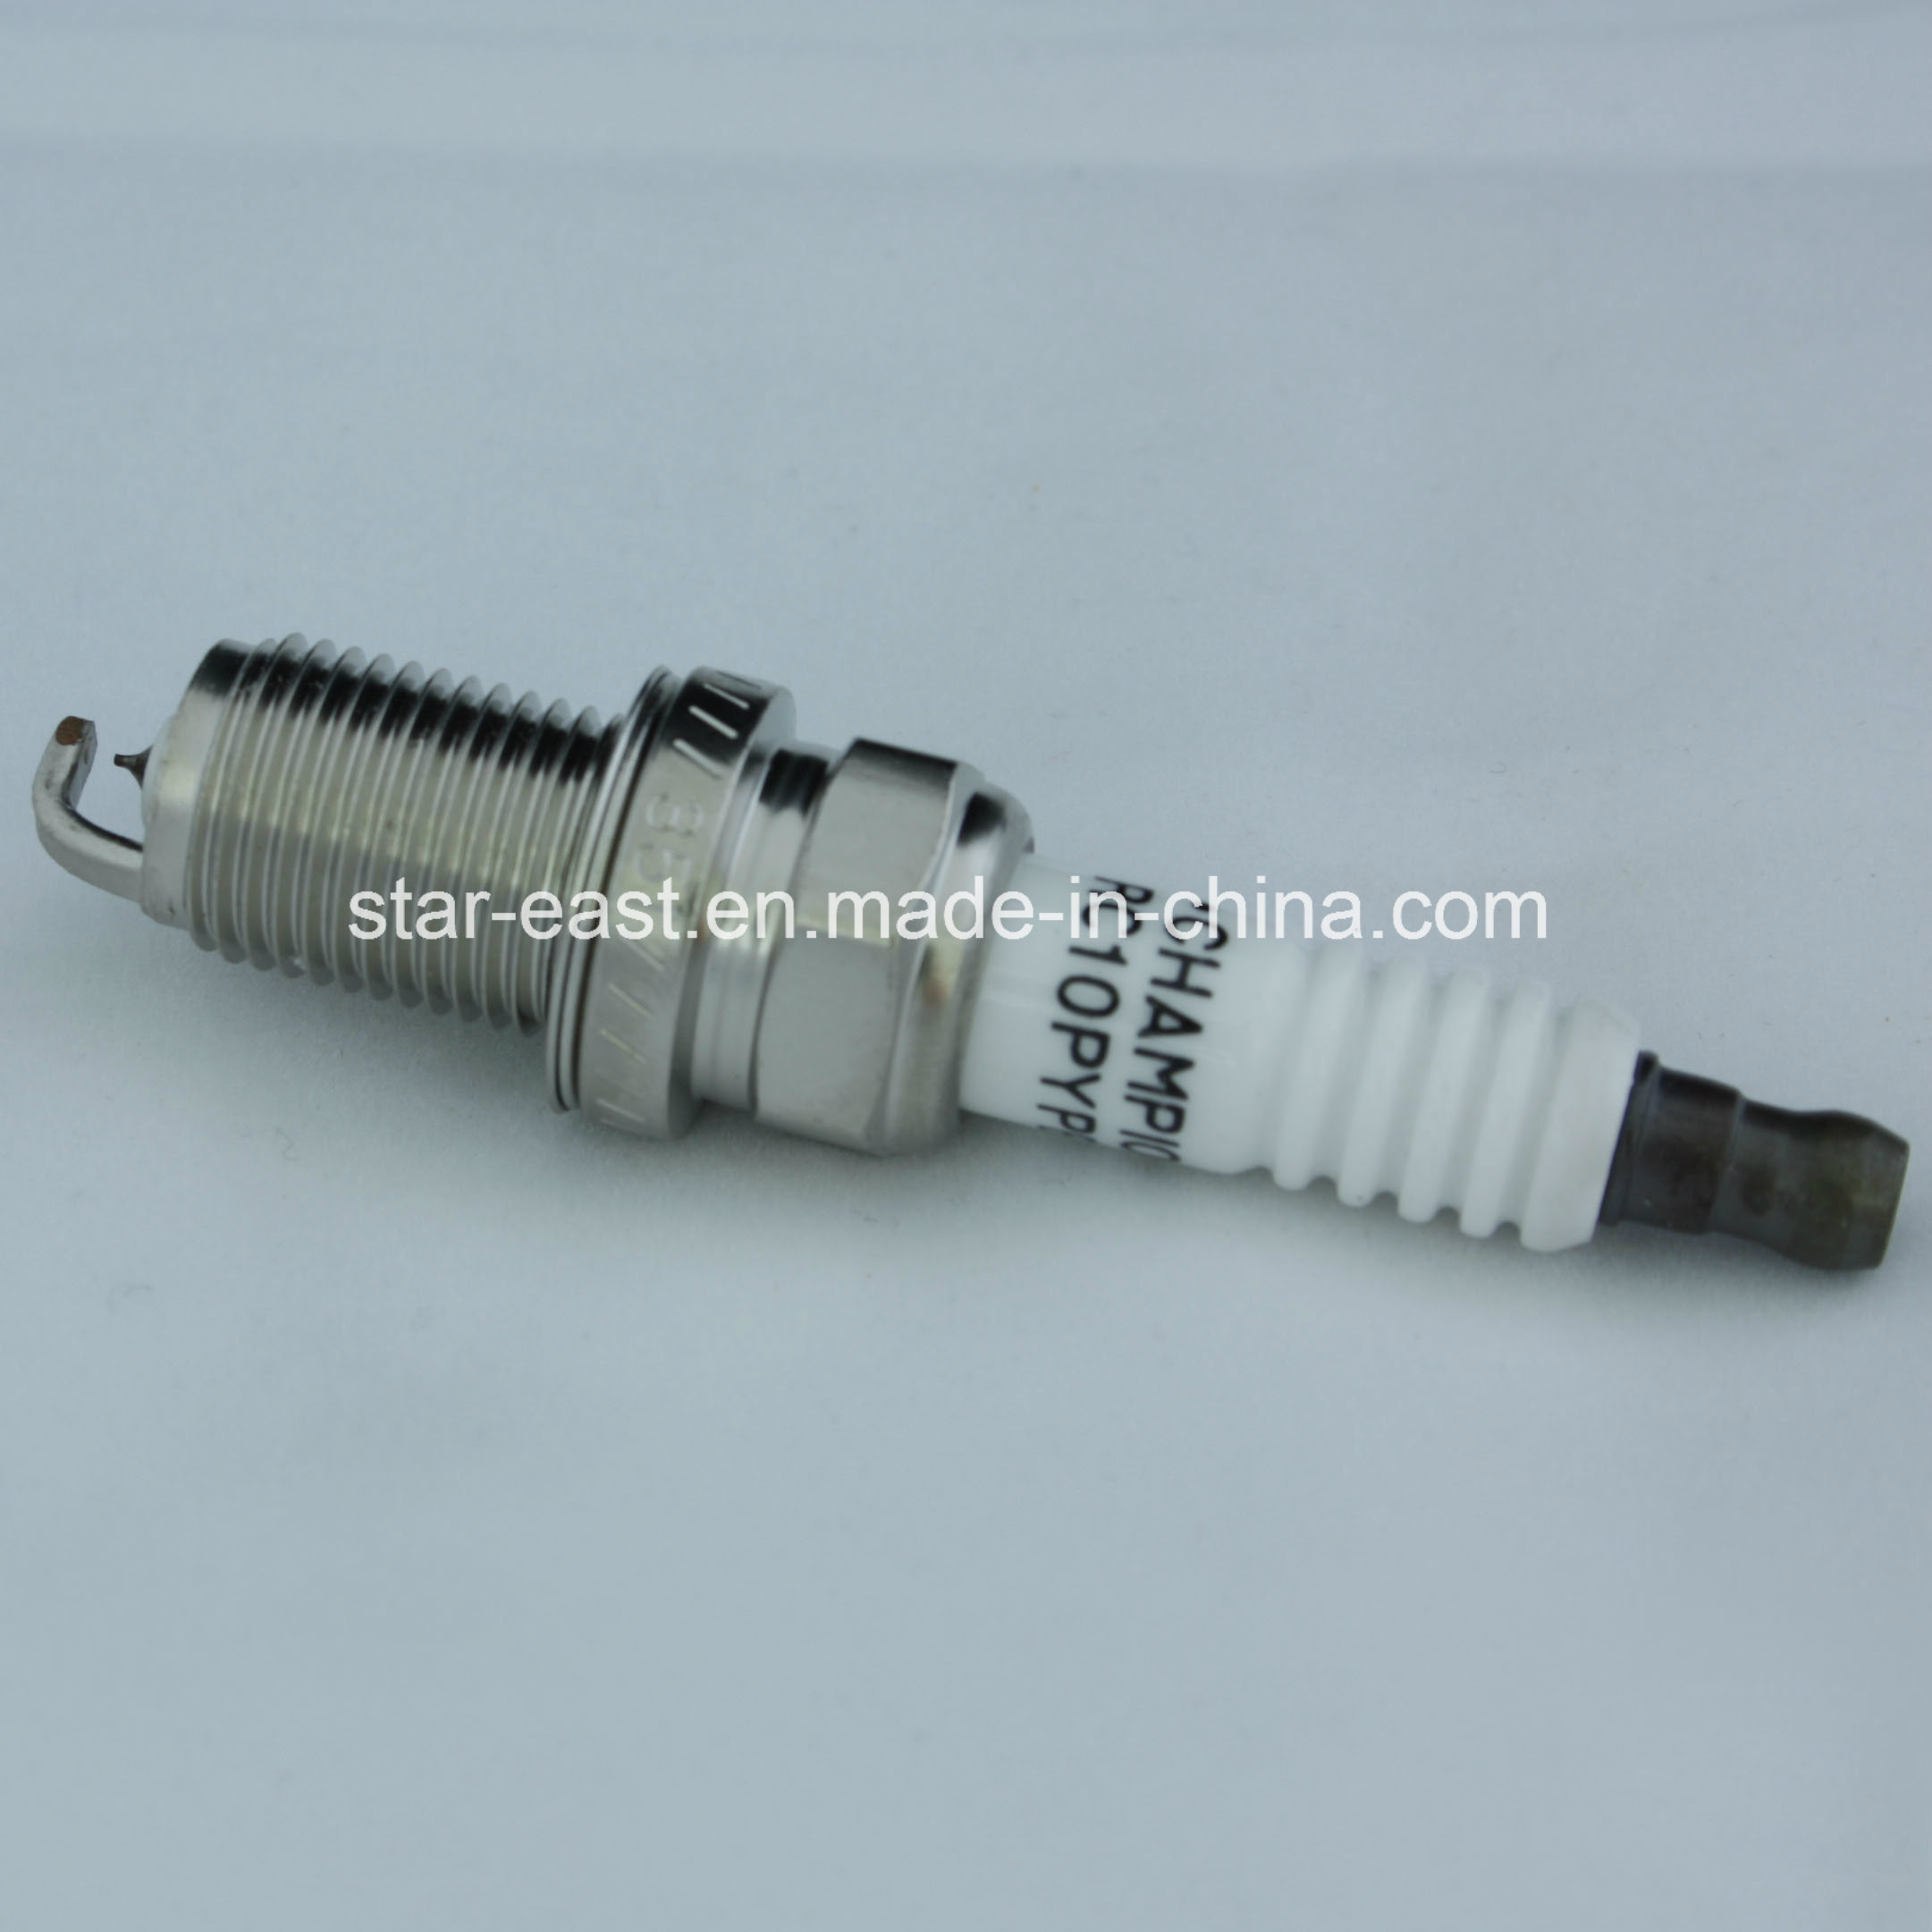 Iridium Power Spark Plug for 18814 11051 Hyundai/KIA pictures & photos